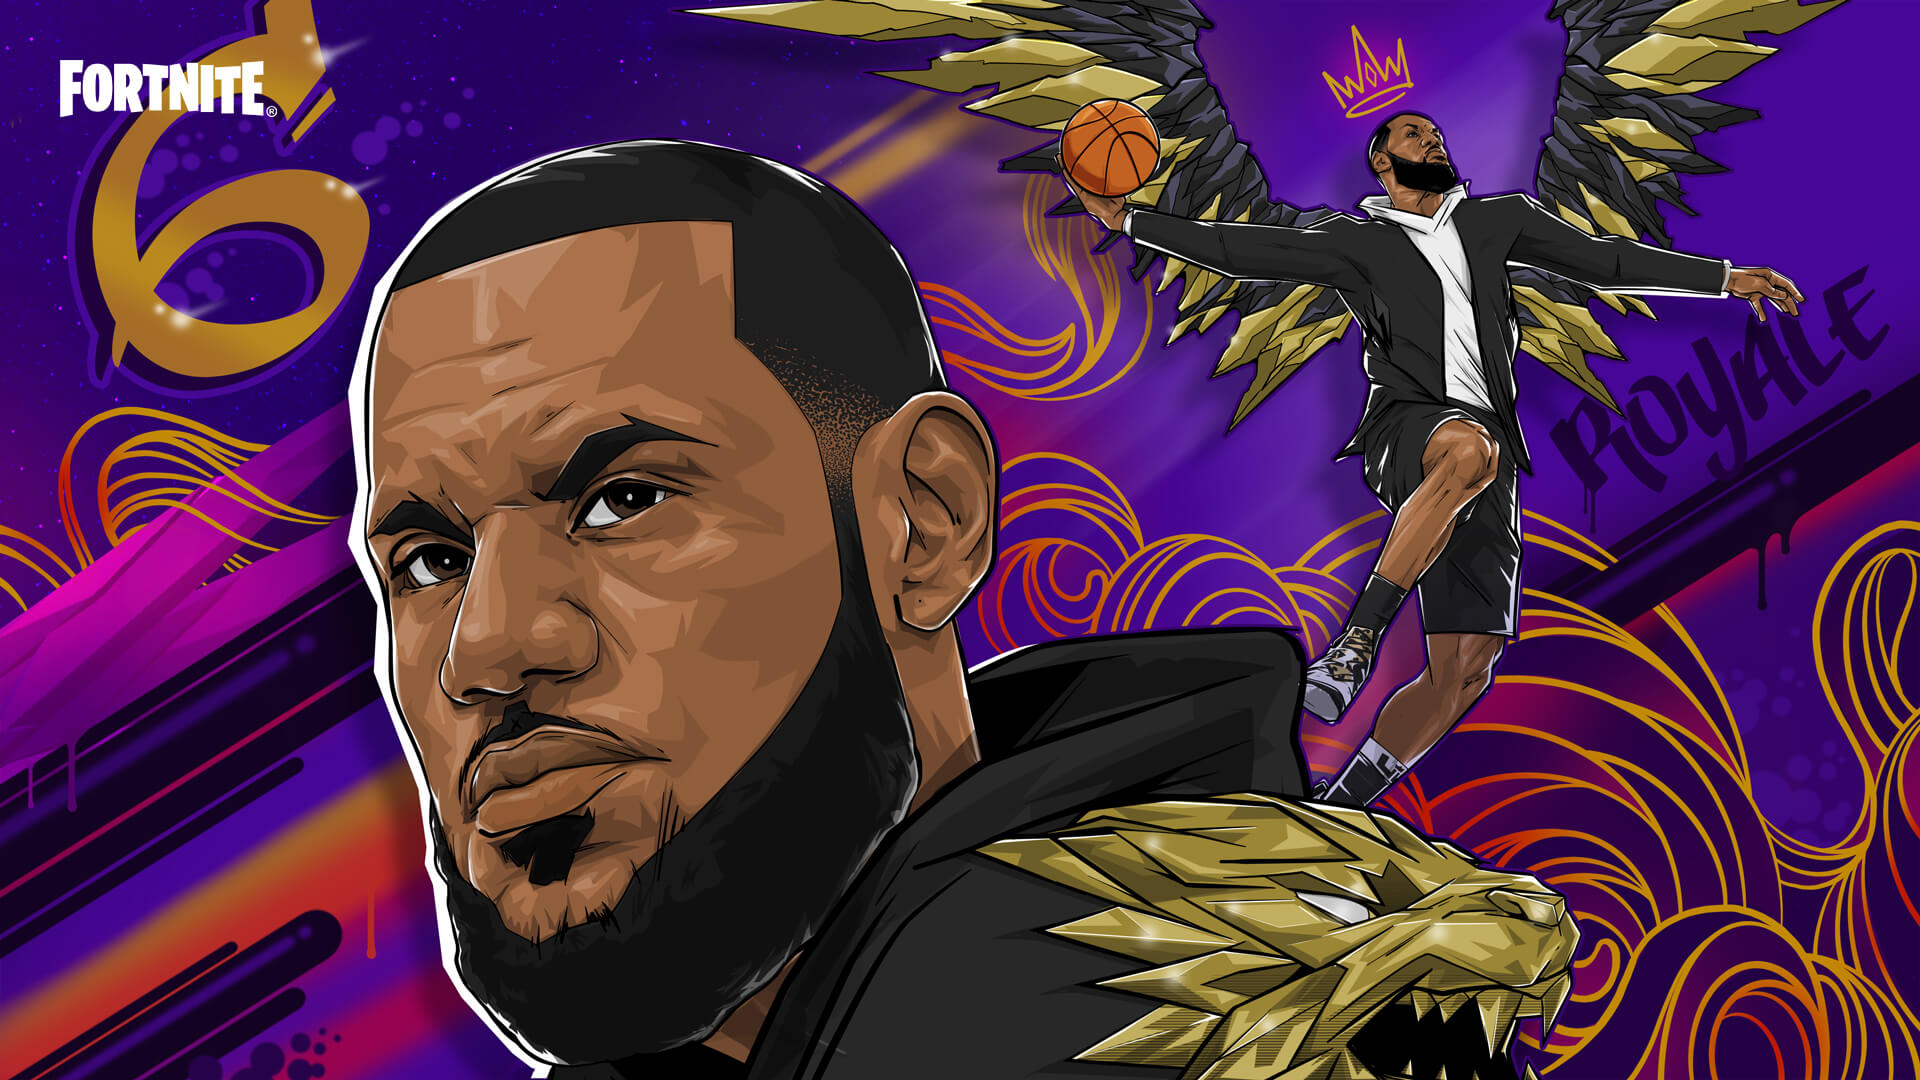 Fortnite Lebron James Courts In Session Loading Screen